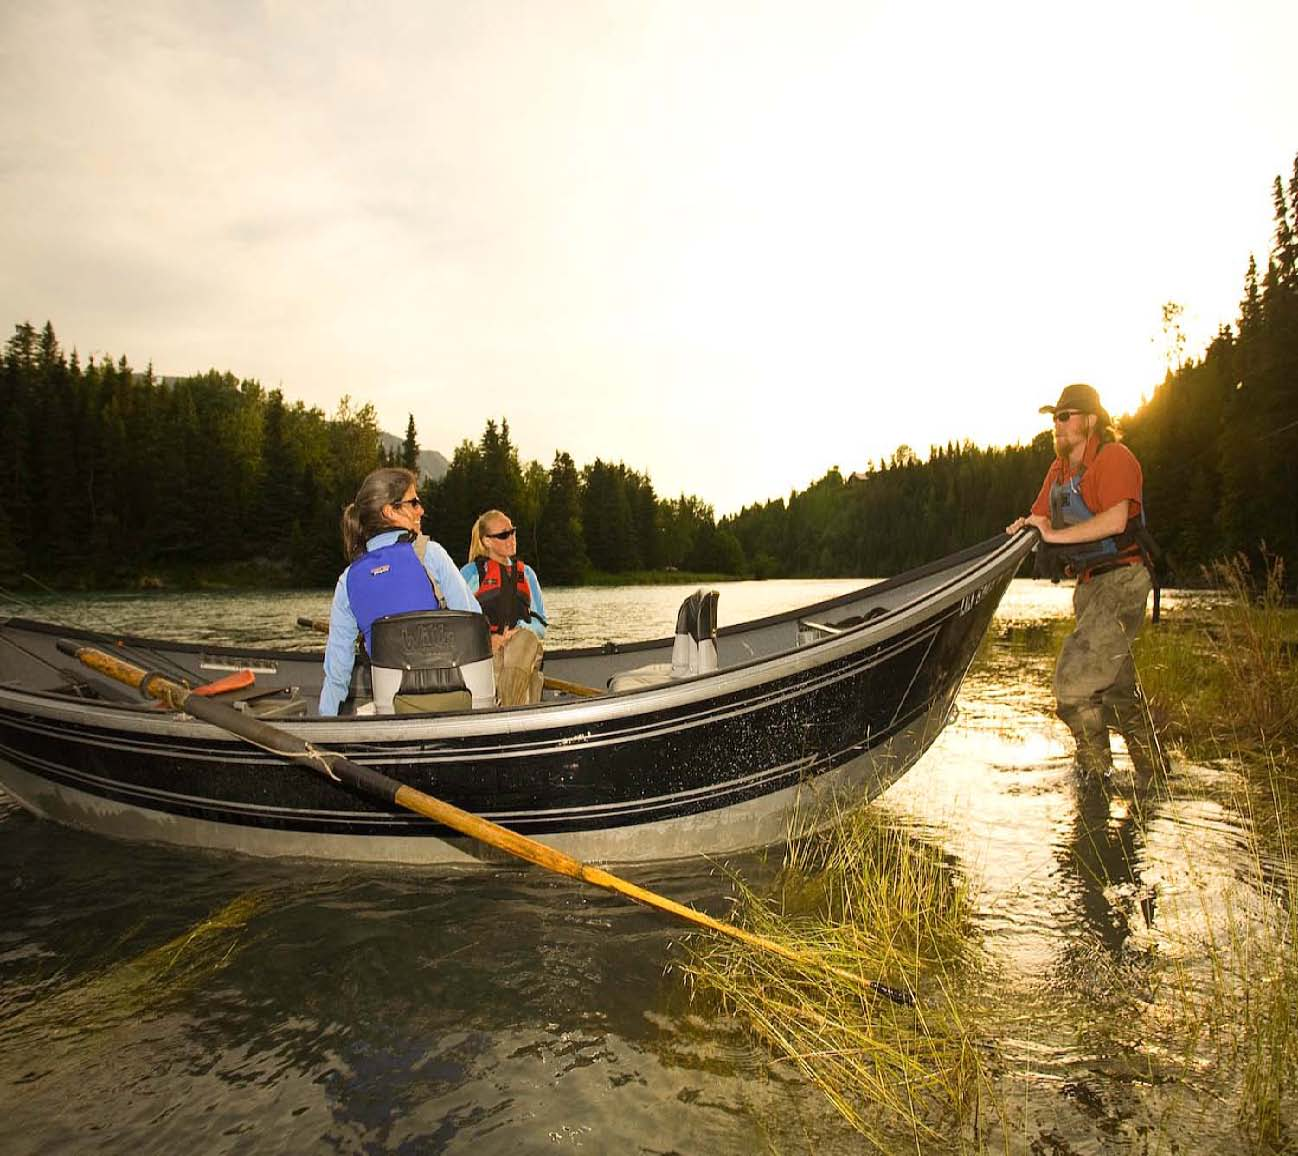 Alaska rivers company guided fishing upper kenai alaska for Fishing company of alaska